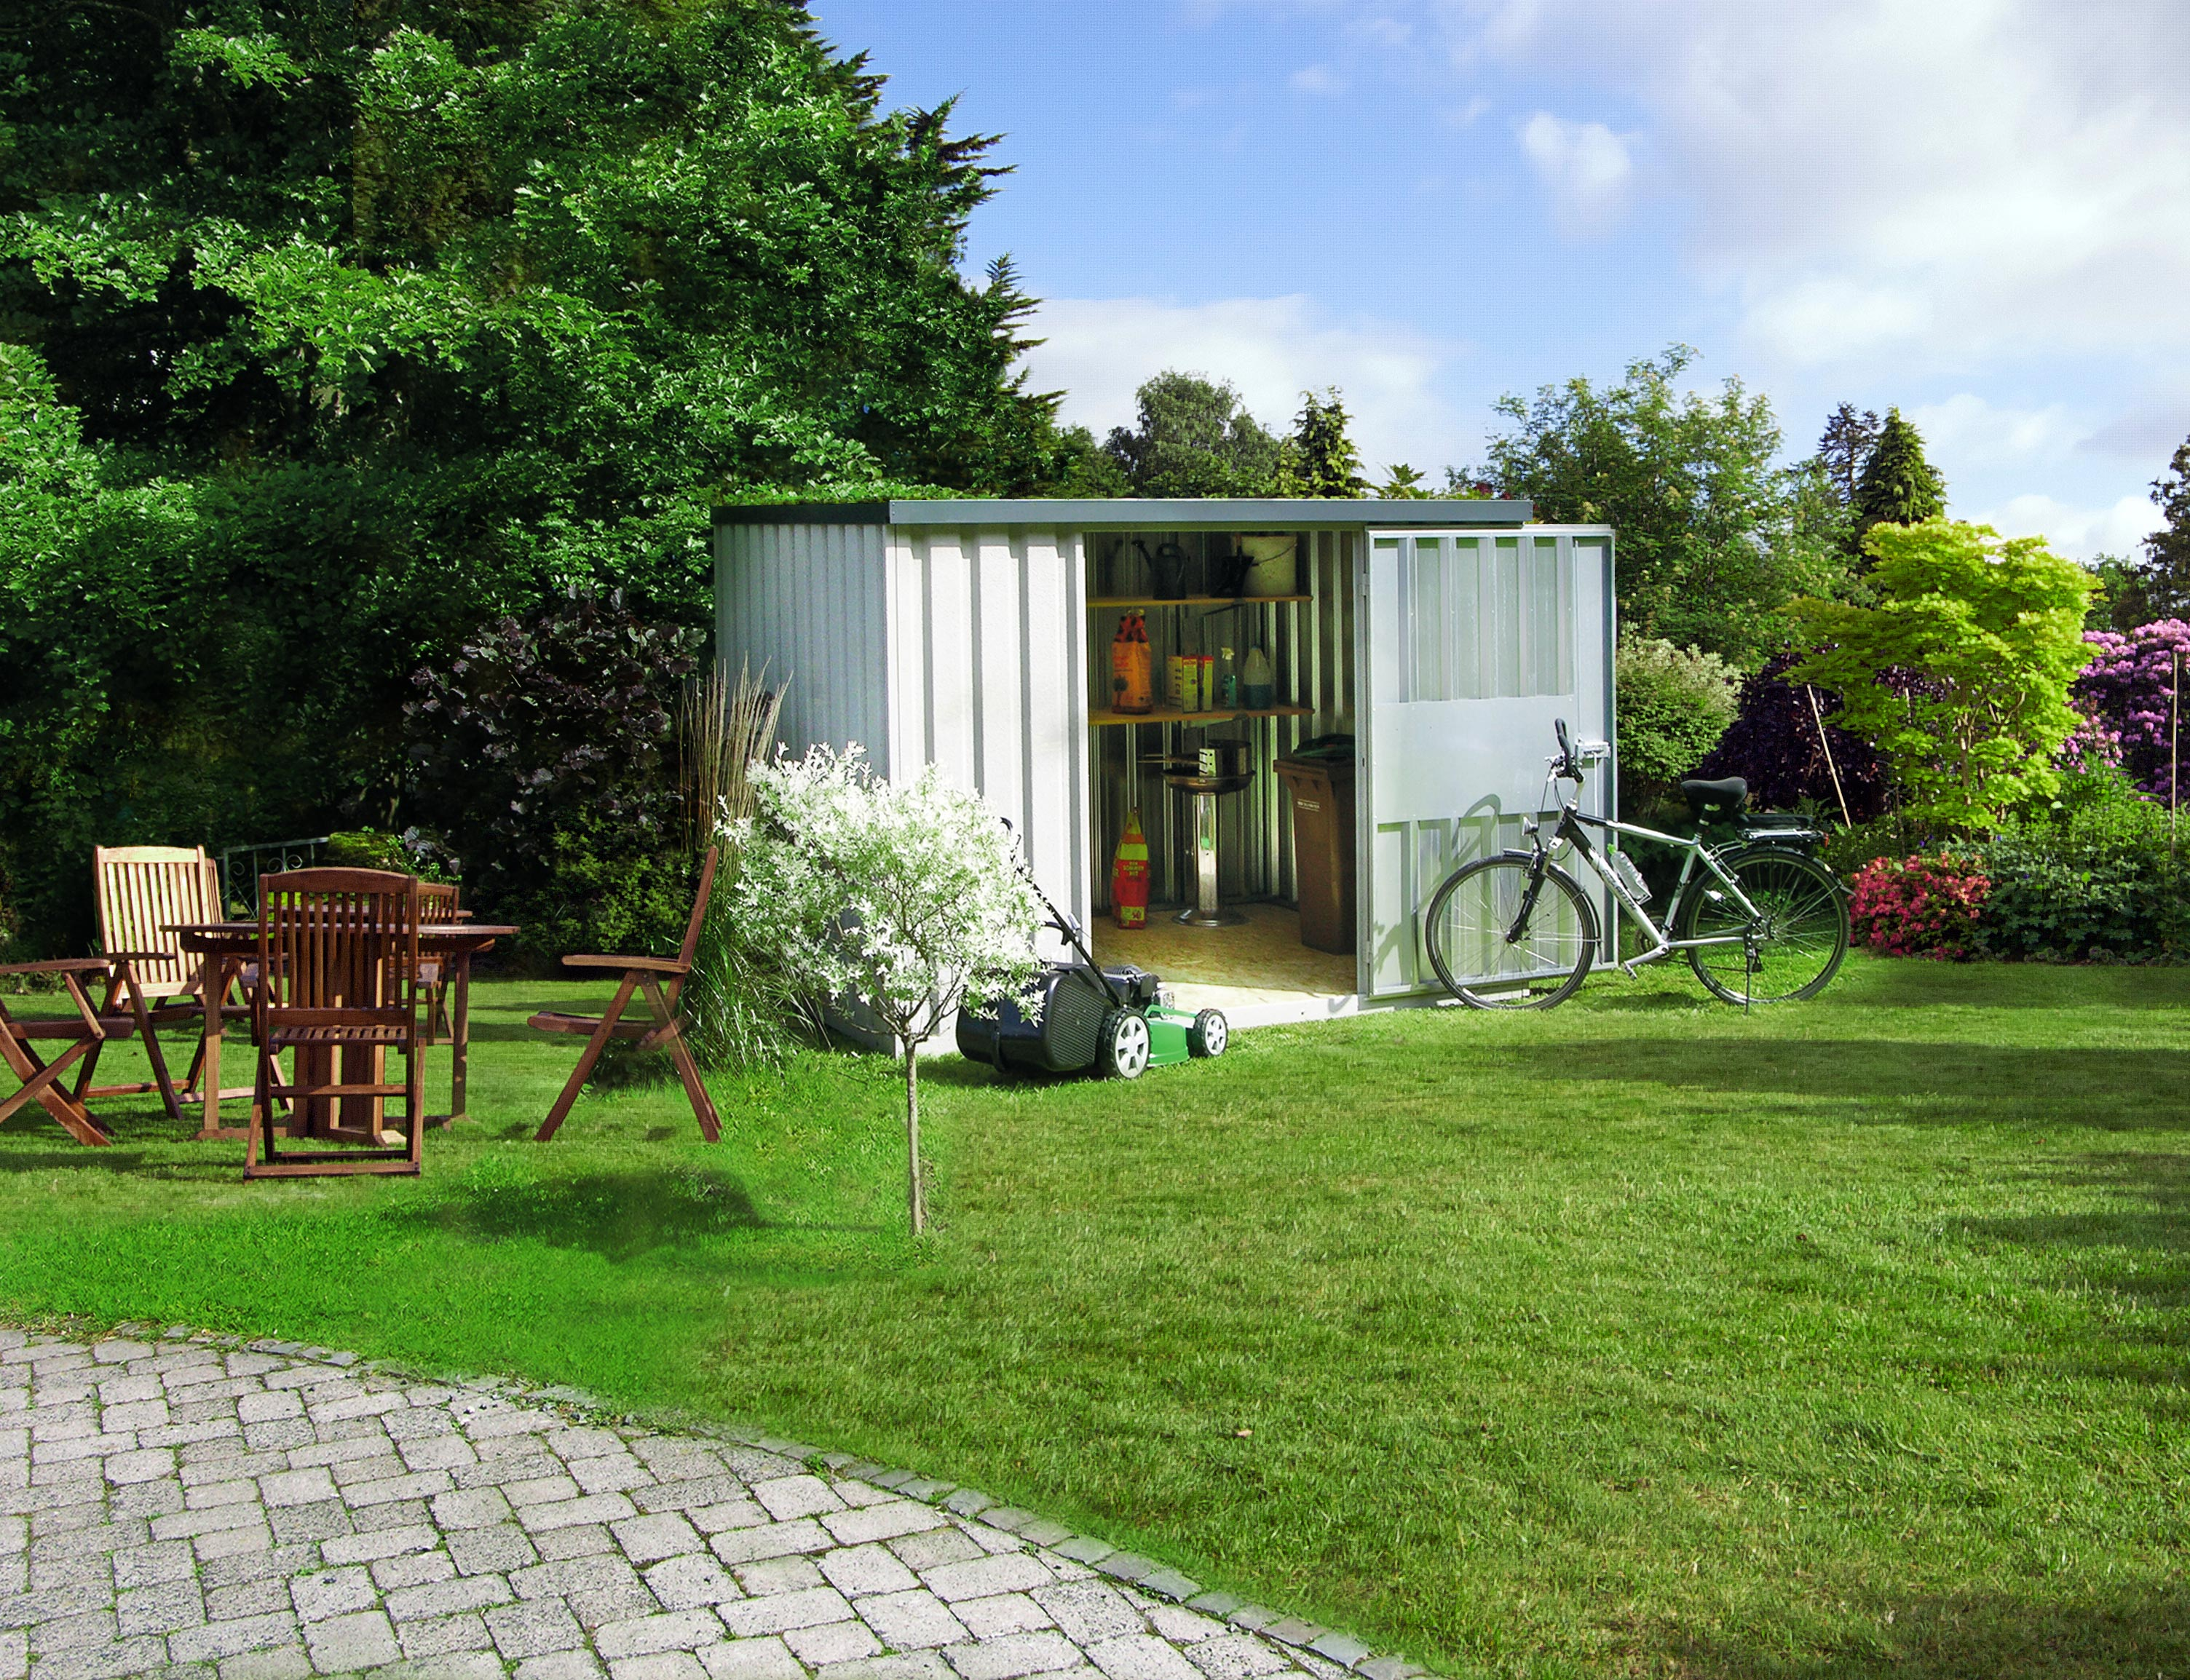 container lagerhalle bauwagen halle gartenhaus gartencontainer lager reifenlager ebay. Black Bedroom Furniture Sets. Home Design Ideas